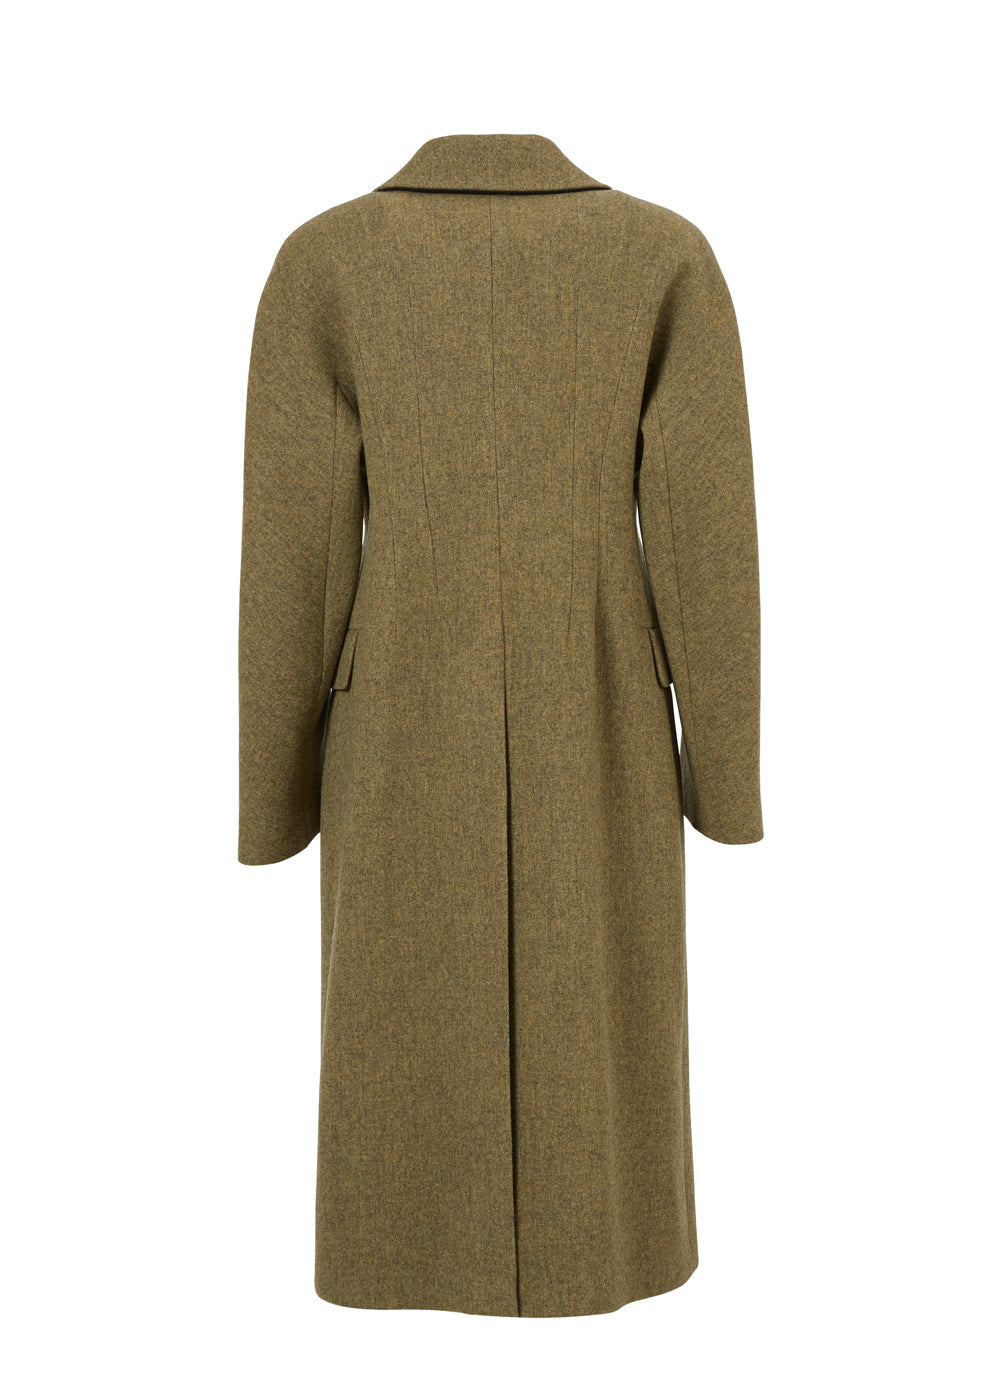 CORSET FIT WOOL COAT OLIVE